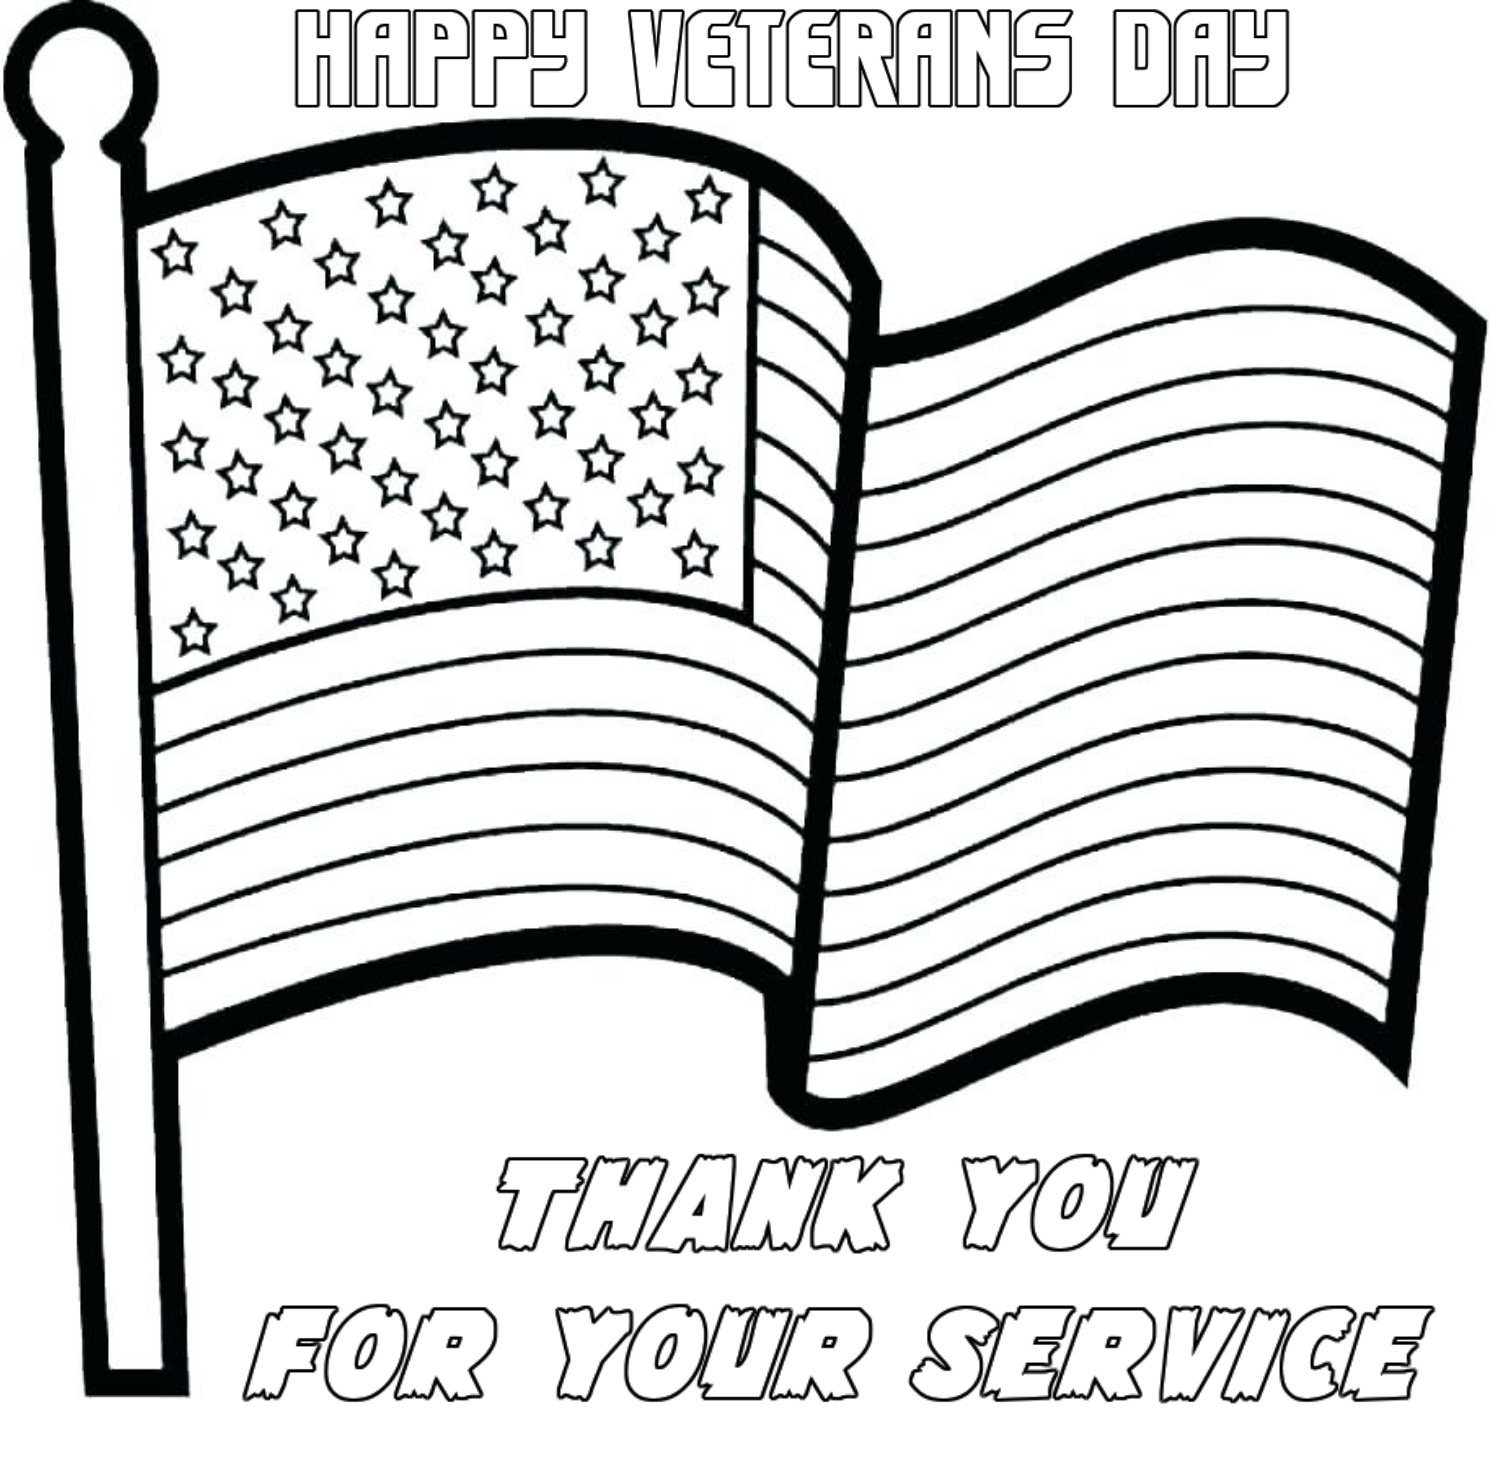 Veterans Day U S Flag Coloring Pages Free And Printable Us Flag Usflag Cartoon Coloring Pages Flag Coloring Pages Coloring Pages Flag Colors